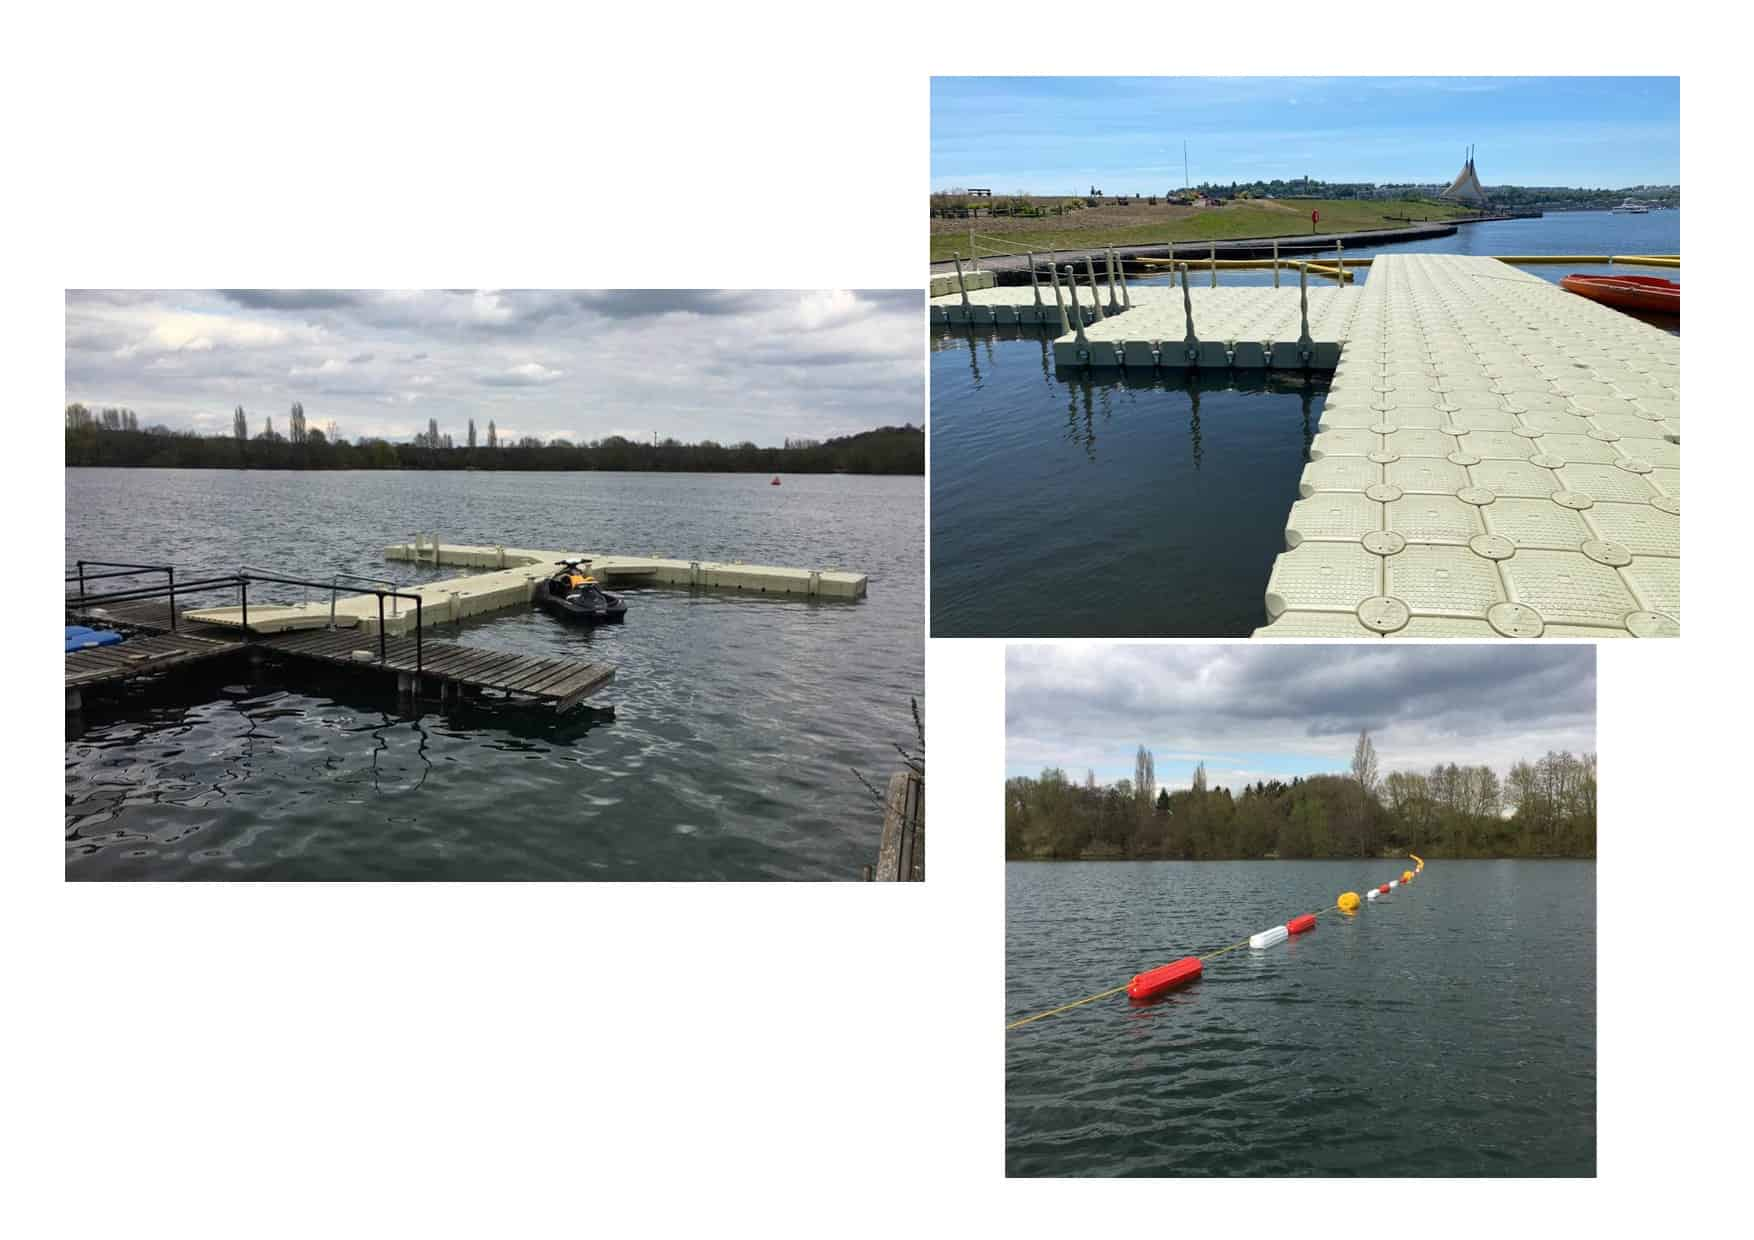 Rotodock hammerhead pontoon and safety barrier Marlow